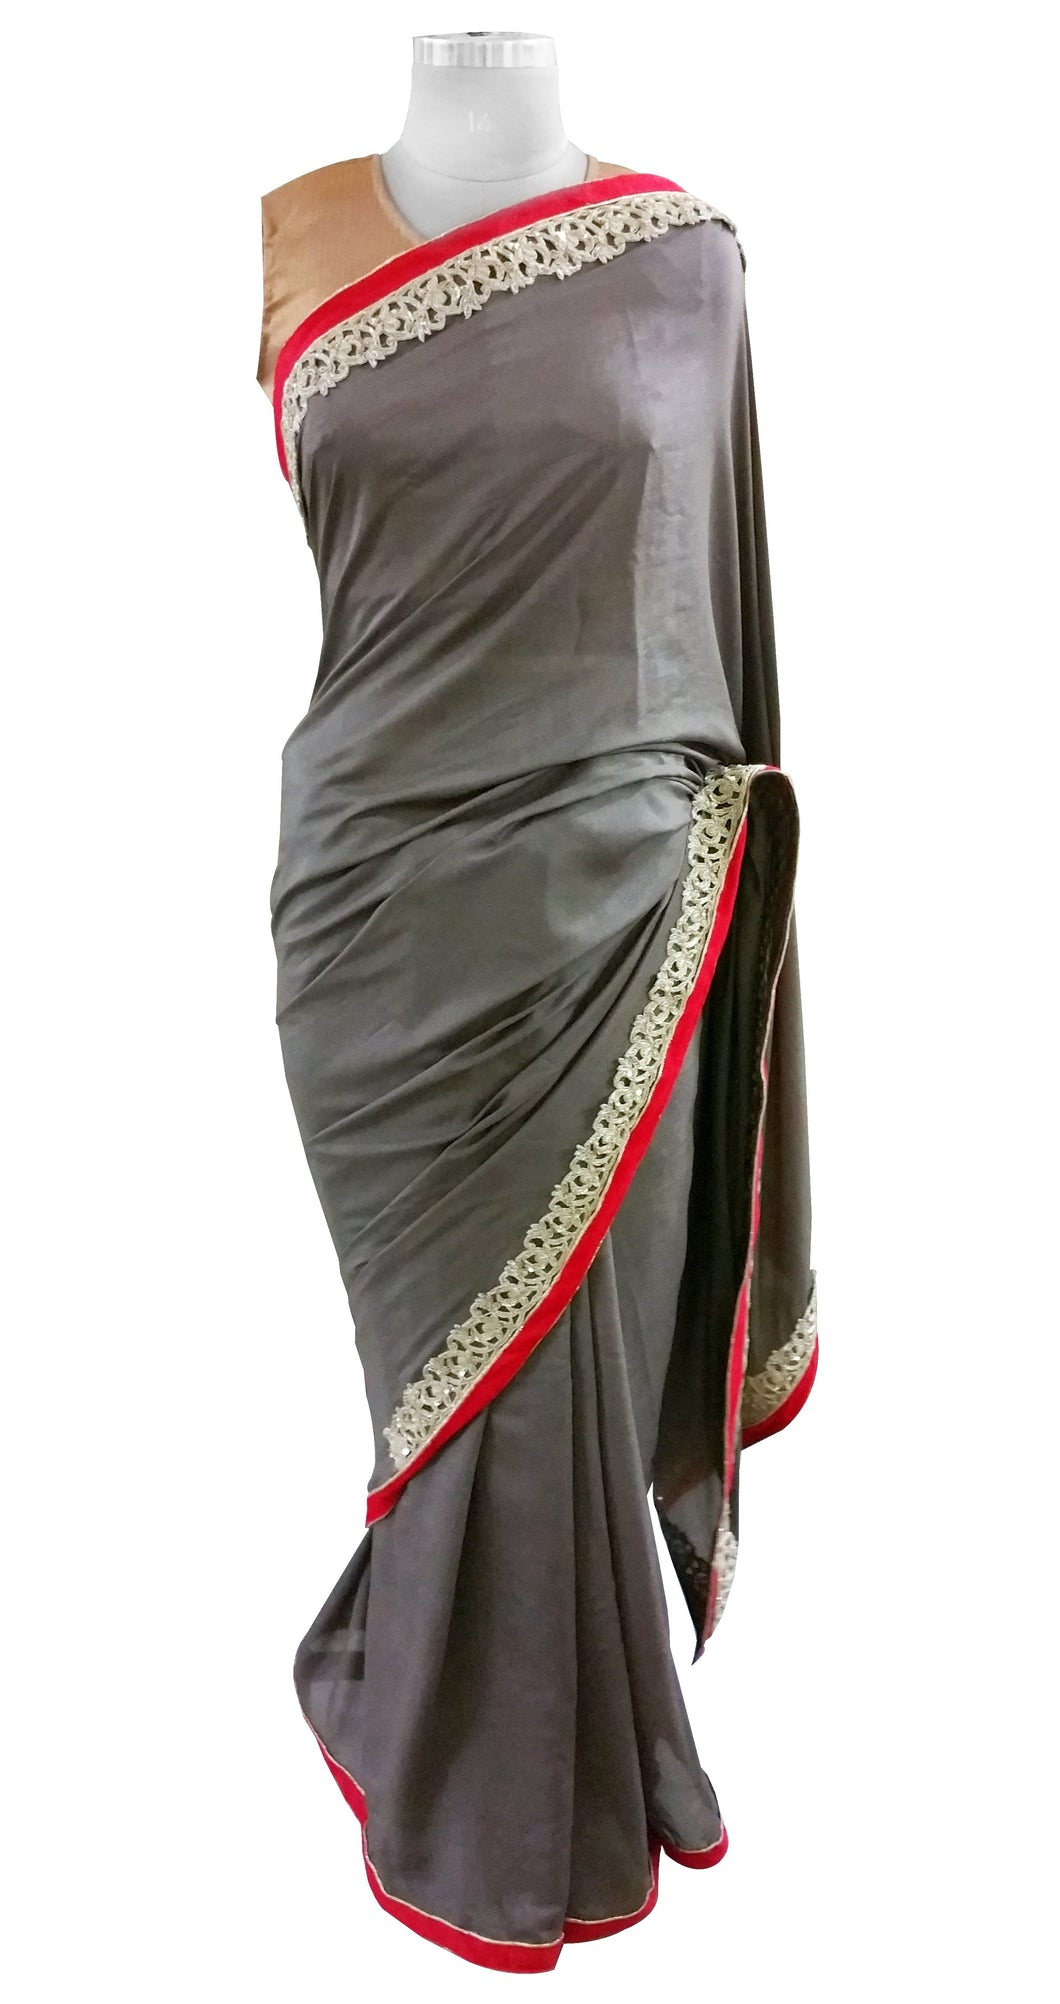 Corain Silk Gray Zardozi Border Saree With Heavy Blouse Fabric ACC105 - Ethnic's By Anvi Creations